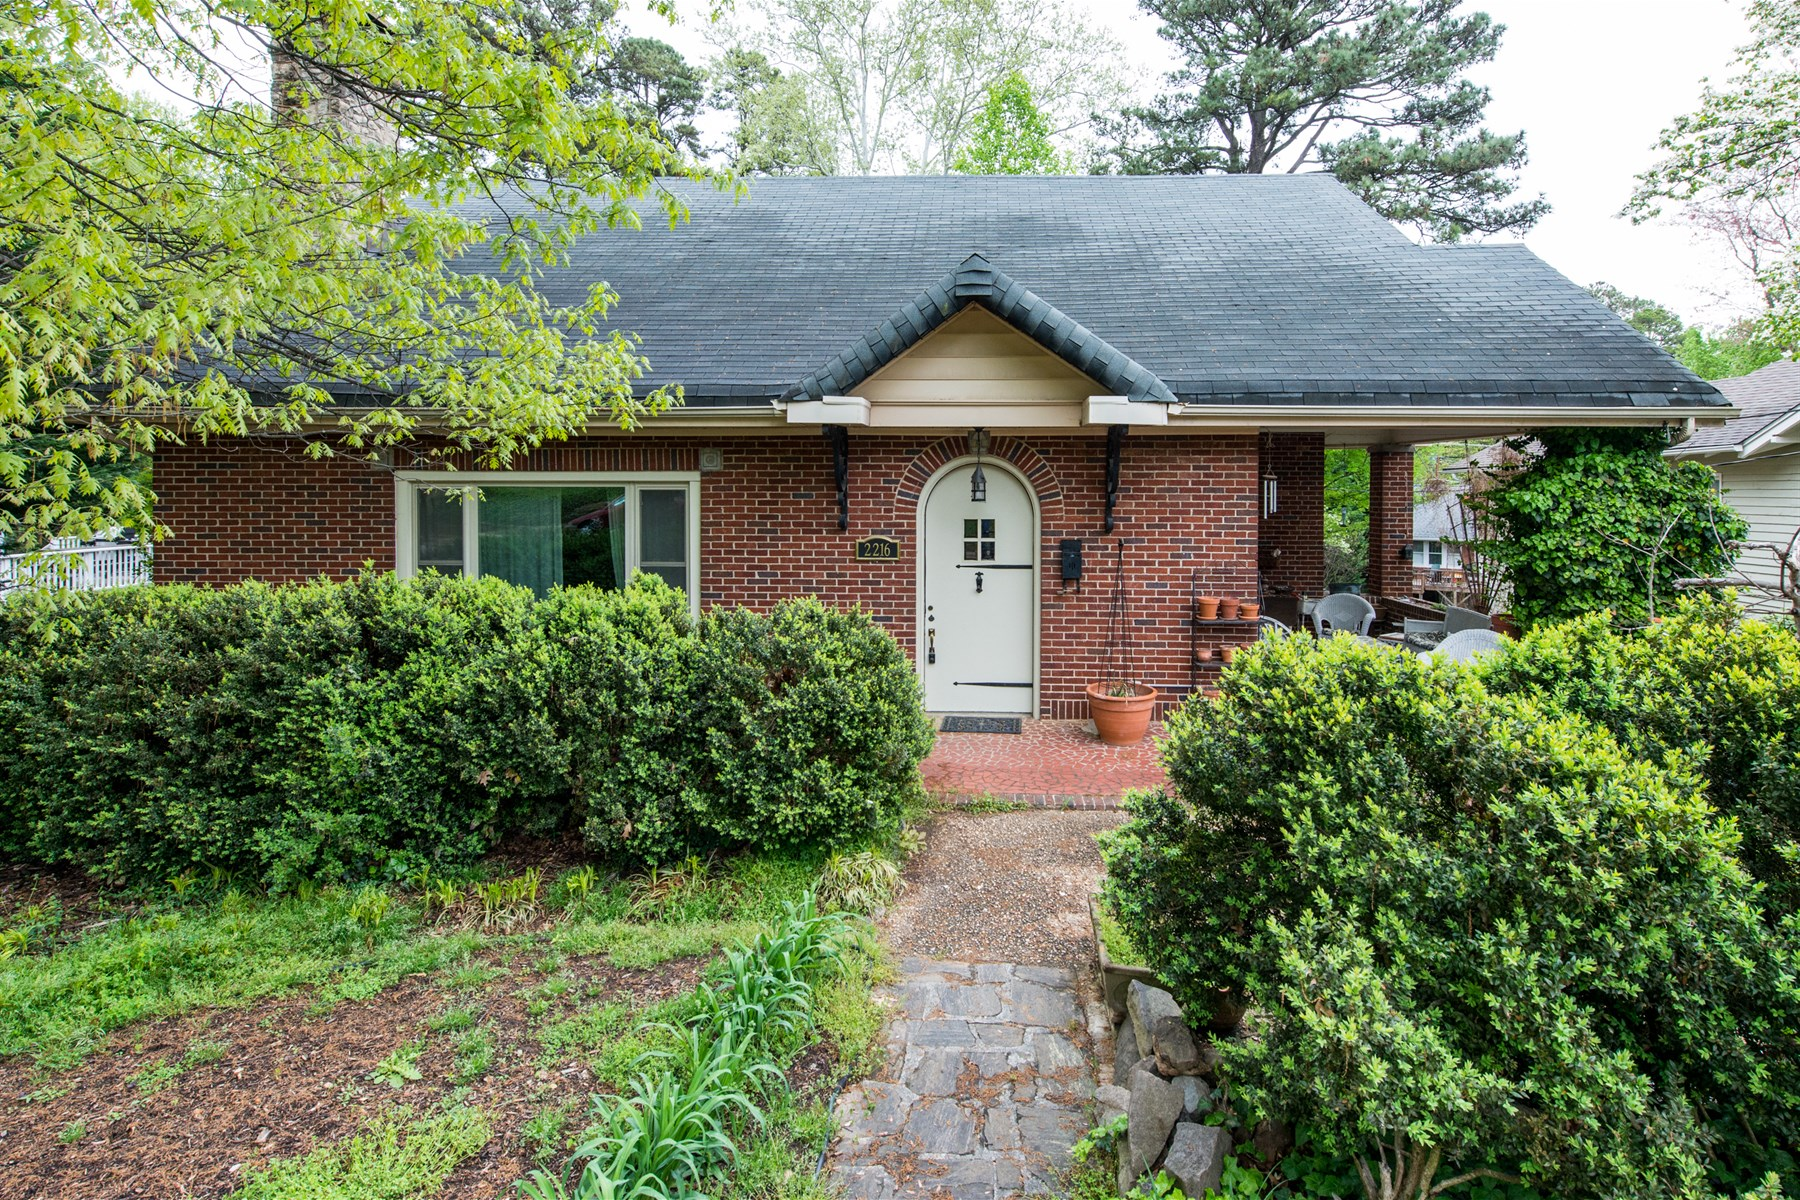 Single Family Home for Sale at Charming ITB Brick Traditional Ranch 2216 Creston Rd. Raleigh, North Carolina 27608 United States